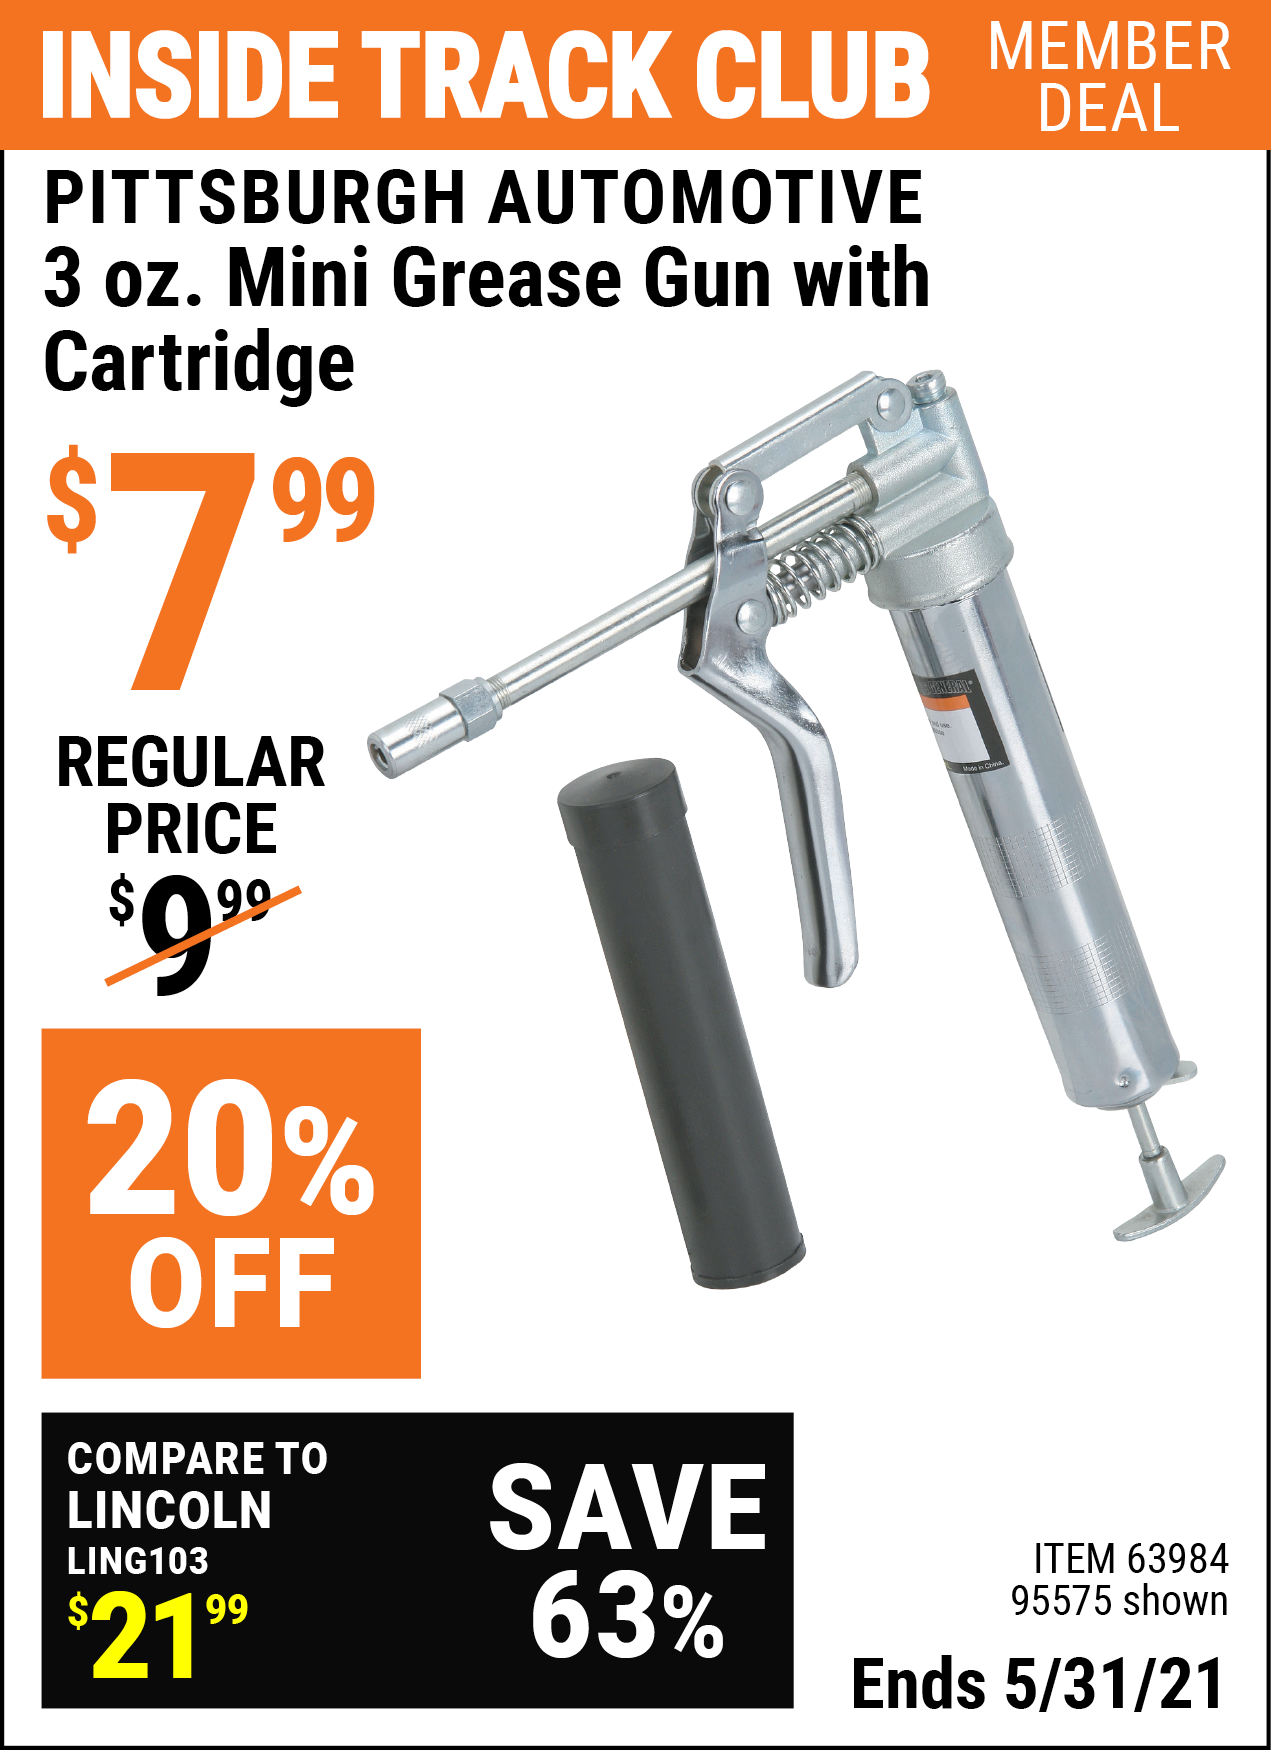 Inside Track Club members can buy the PITTSBURGH AUTOMOTIVE 3 Oz. Mini Grease Gun with Cartridge (Item 95575/63984) for $7.99, valid through 5/31/2021.